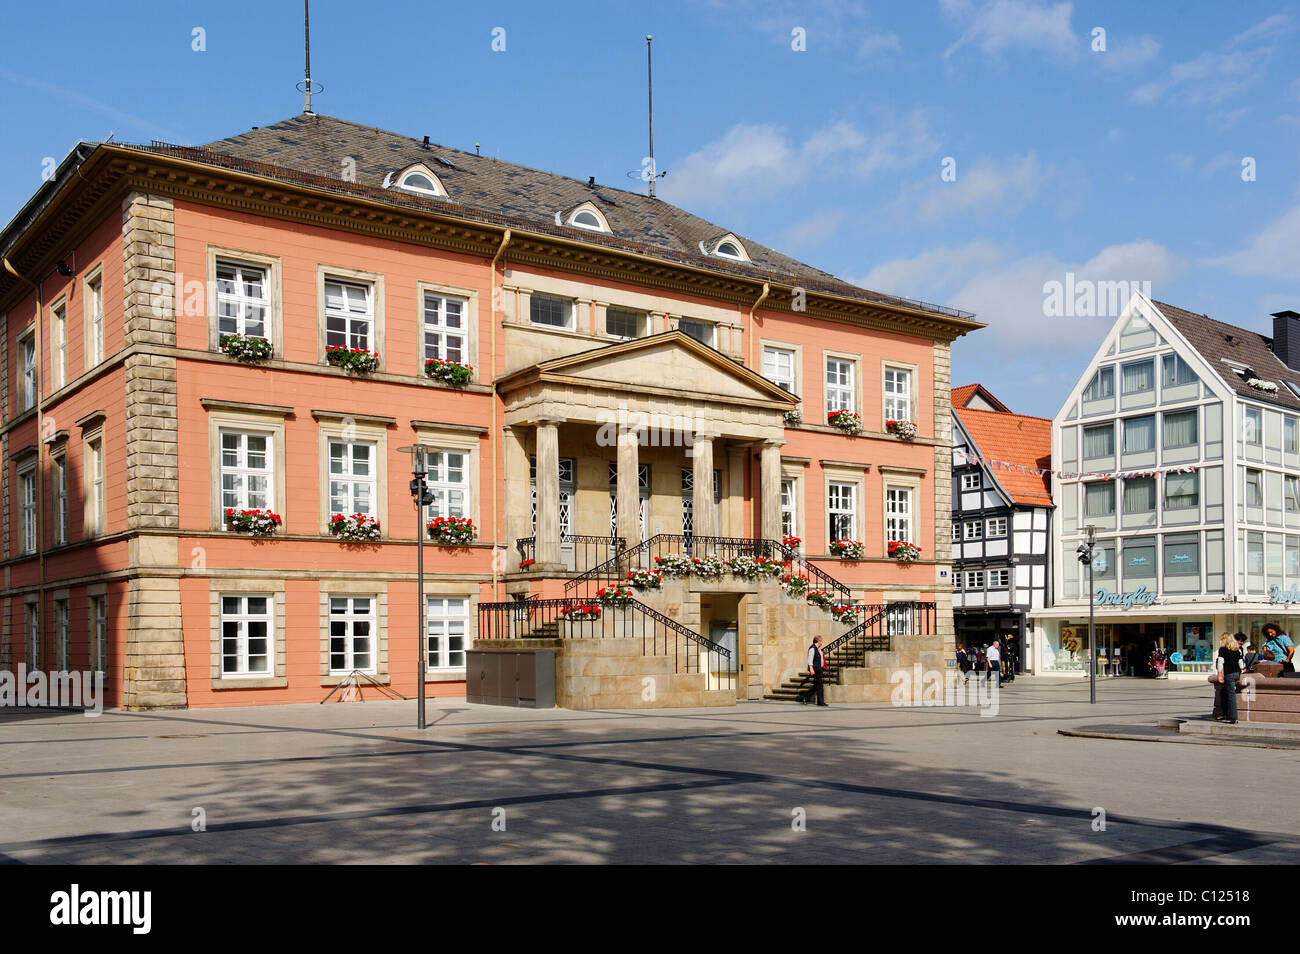 Market square with city hall from 1828-1830, Detmold, North Rhine-Westphalia, Germany, Europe Stock Photo